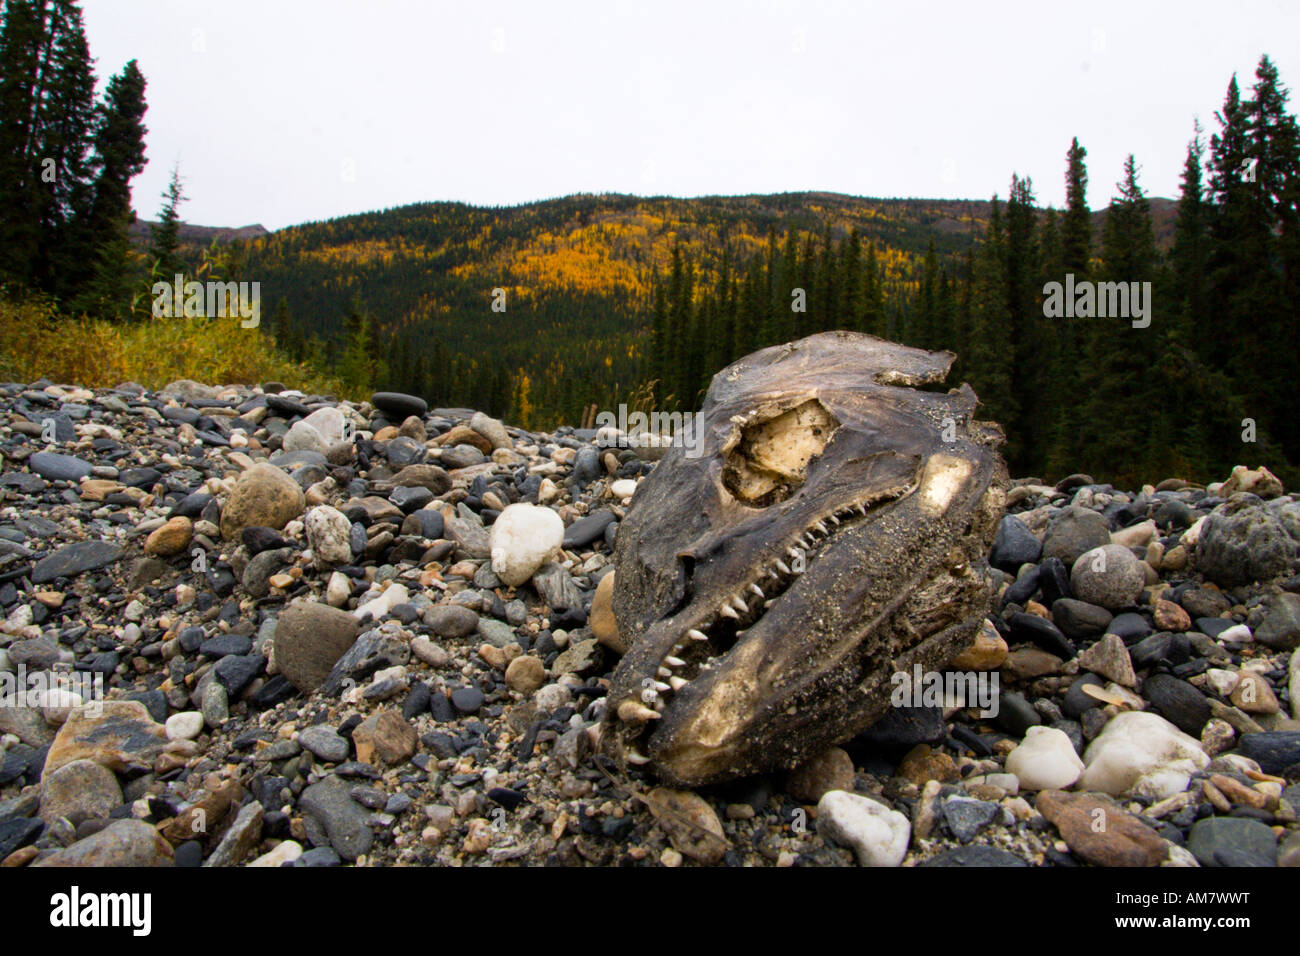 Fish head, salmon, Alaska, USA - Stock Image